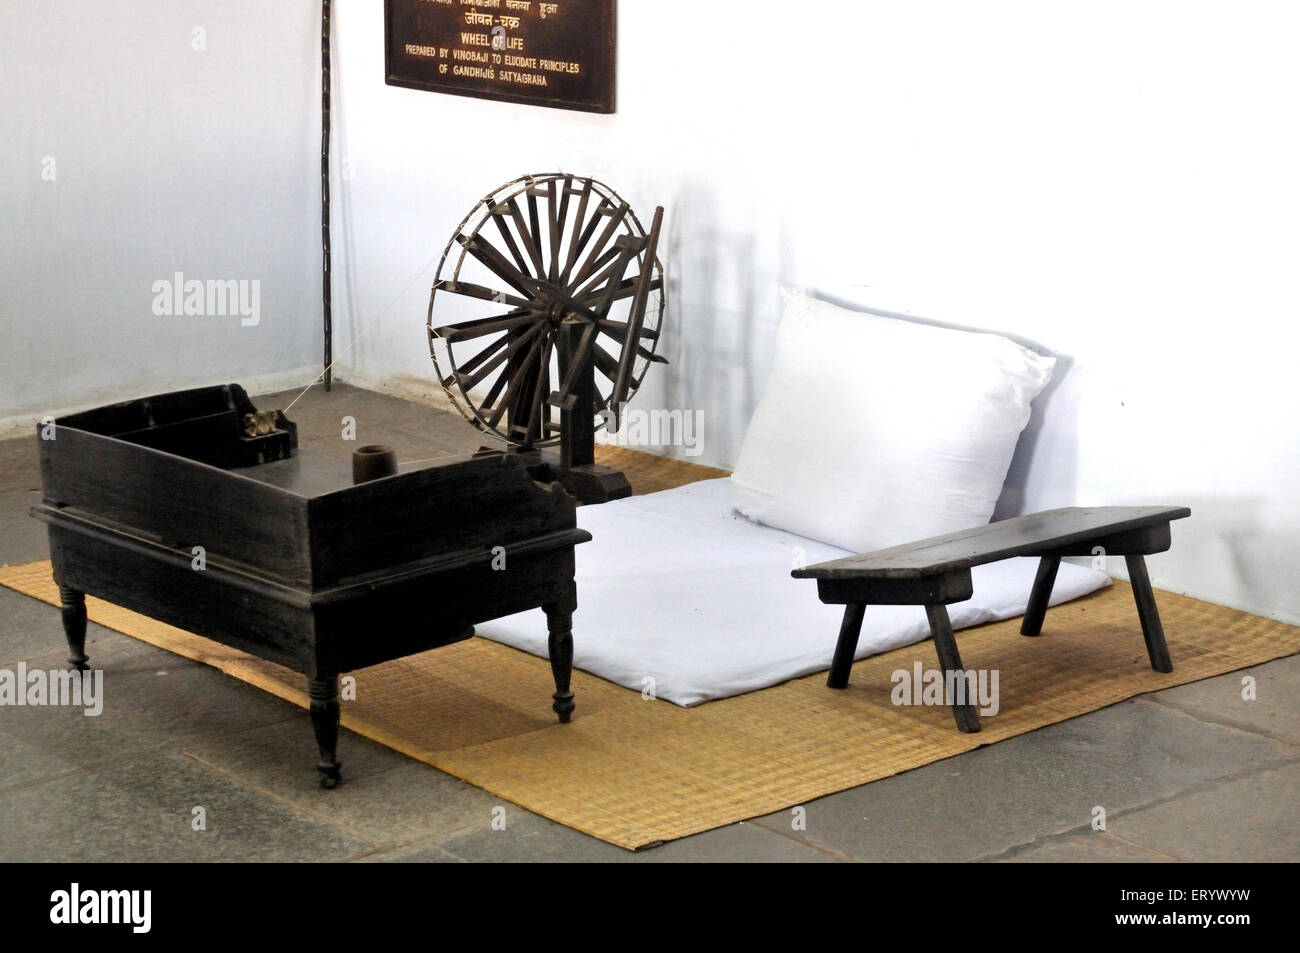 Charkha kept in Mahatma Gandhi room at Sabarmati Ashram ; Ahmedabad ; Gujarat ; India - Stock Image